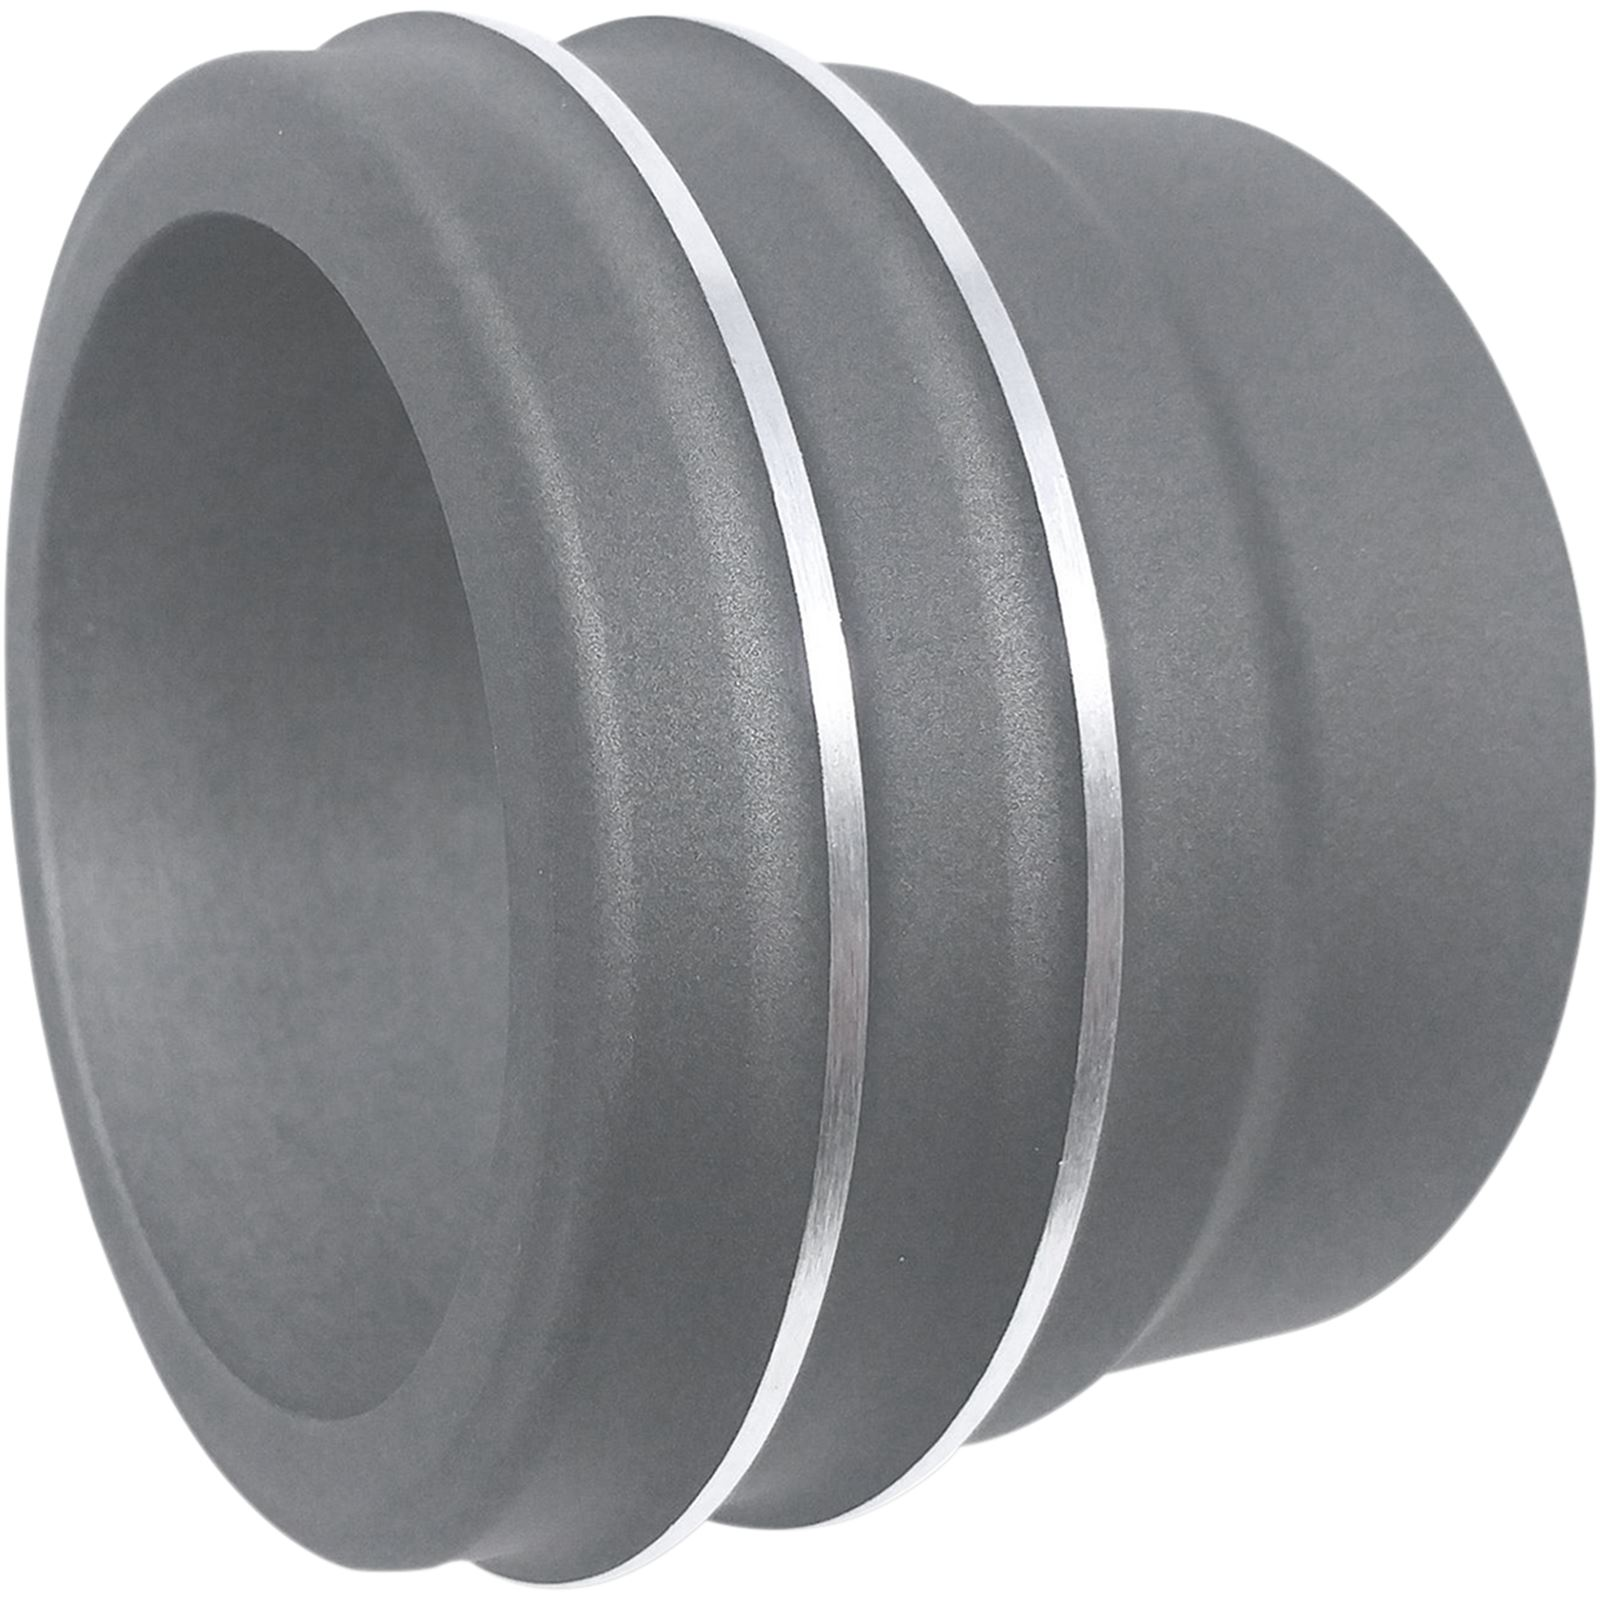 "Covingtons 3"" Destroyer Exhaust Tip - Grey - Ripper"